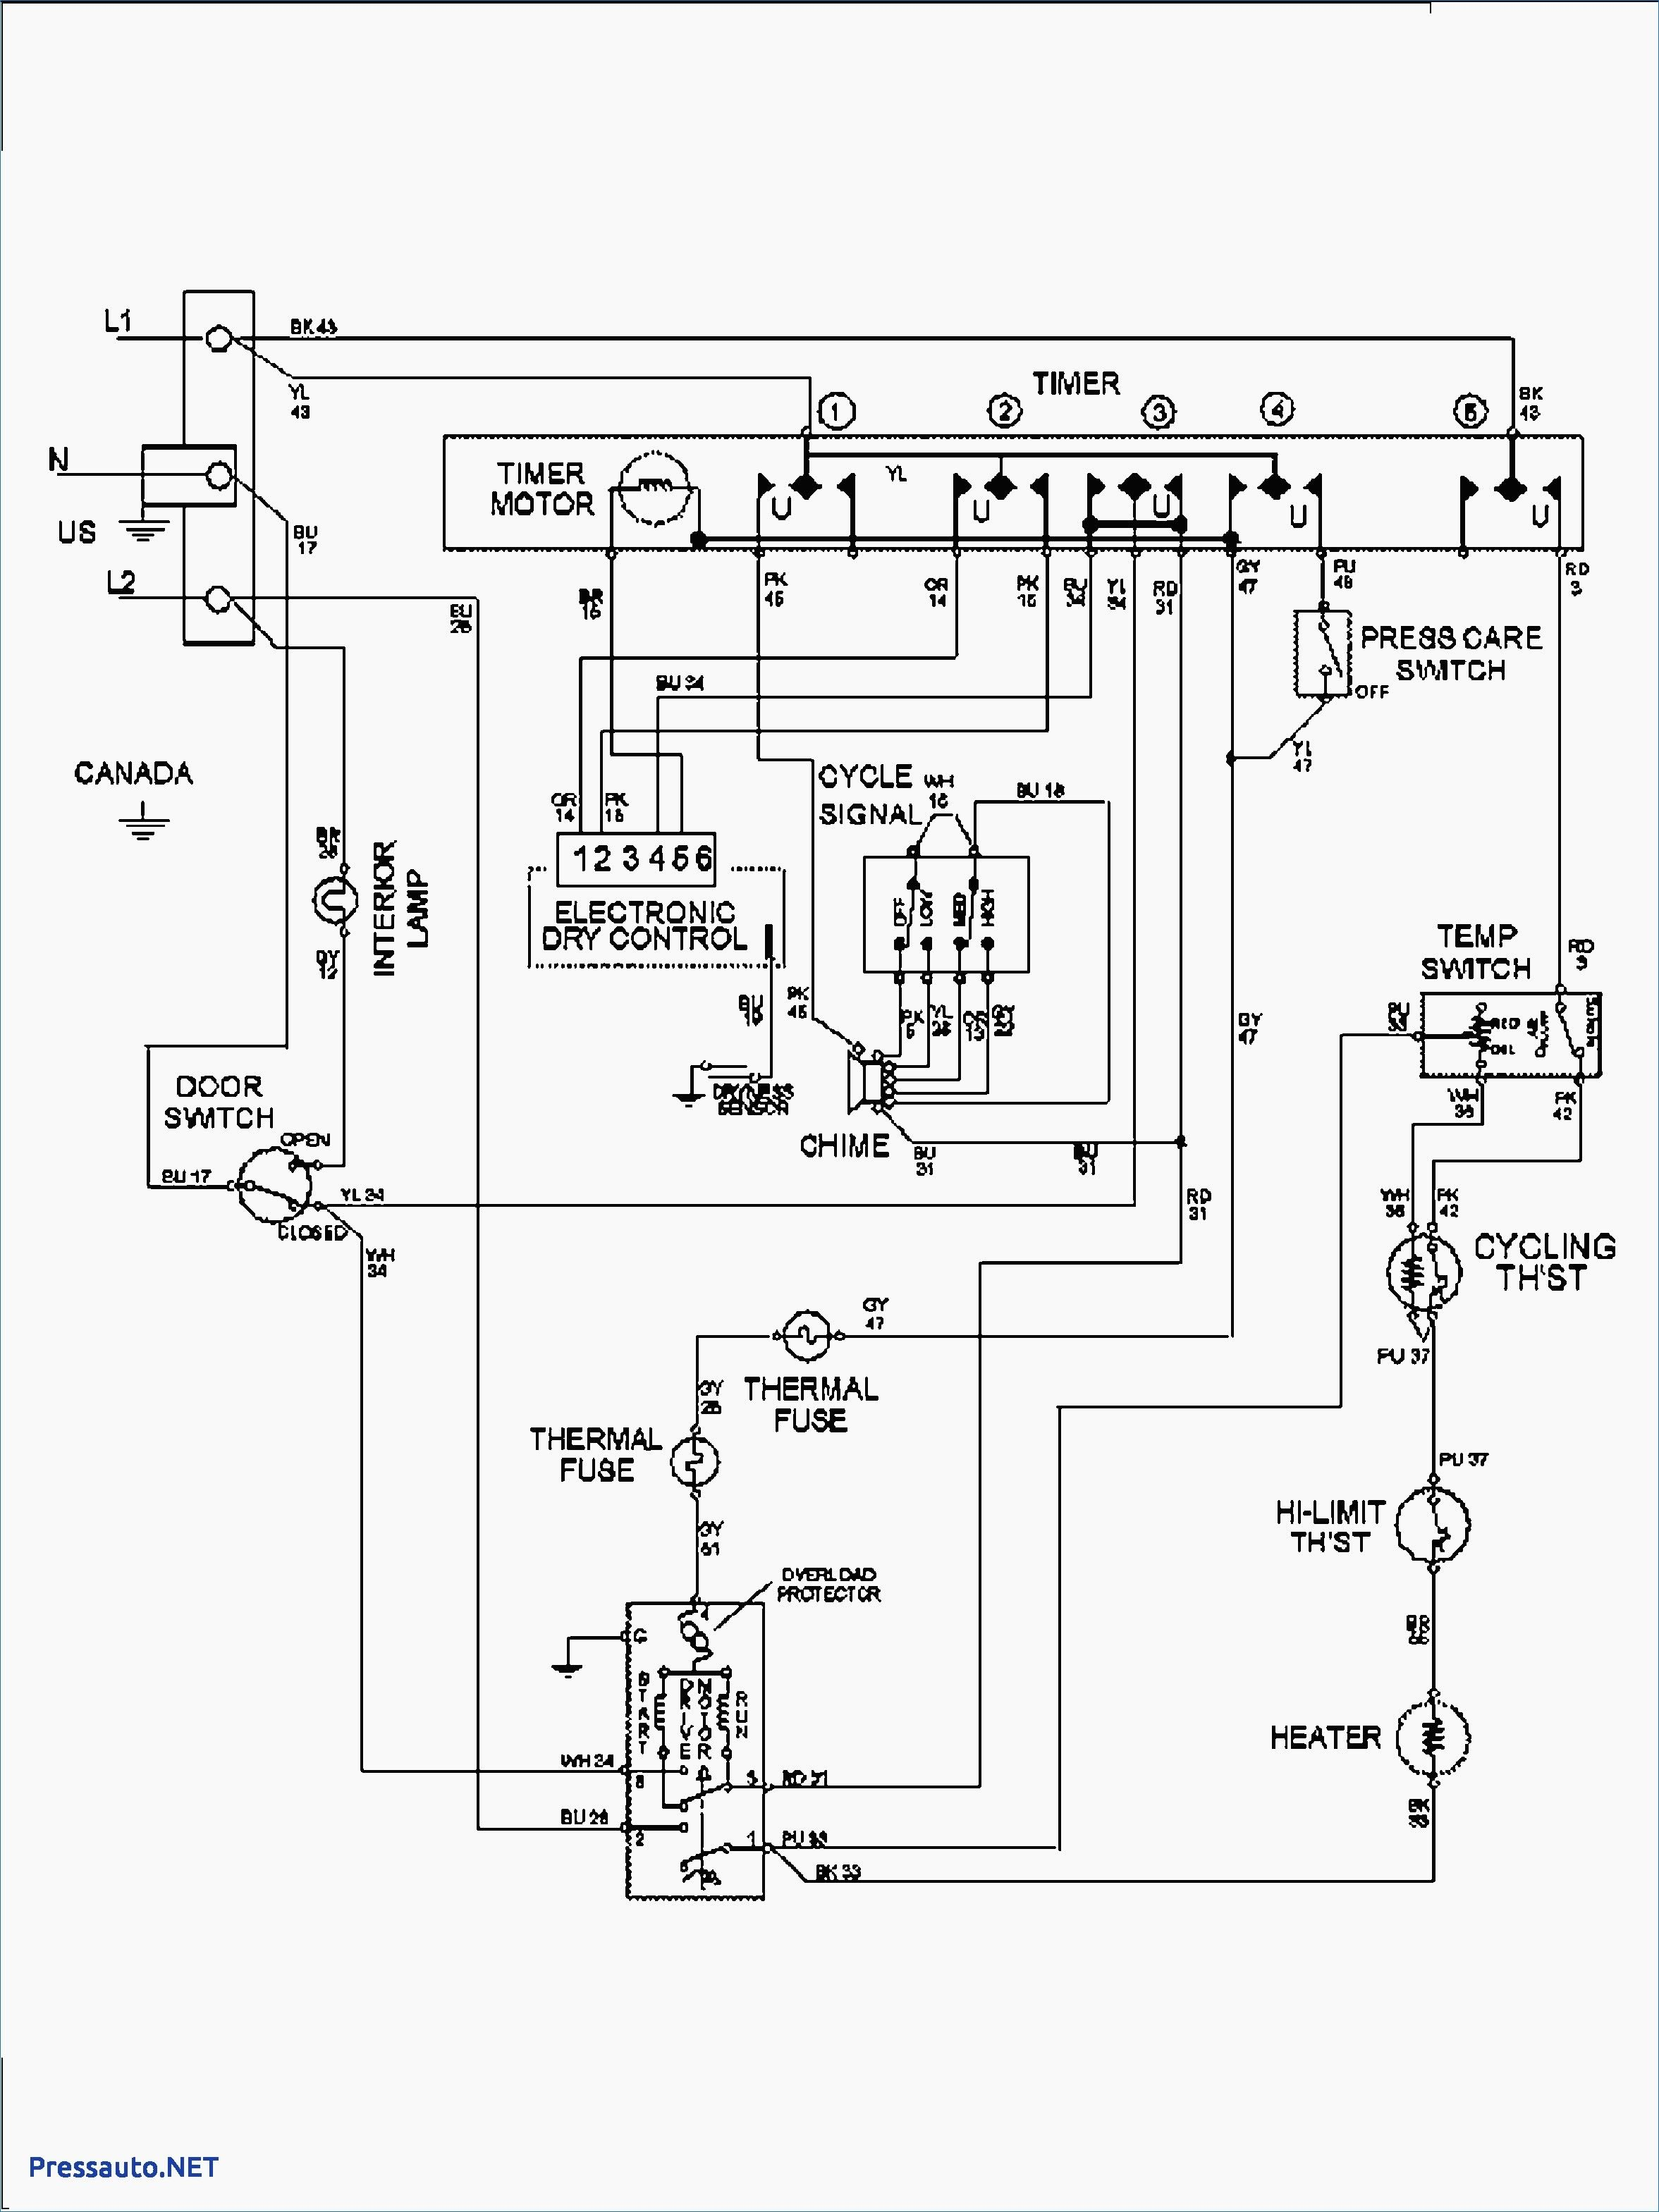 Wiring Diagram Of Washing Machine Http Bookingritzcarlton Info Wiring Diagram Of Washing Electric Dryers Maytag Dryer Dryer Plug